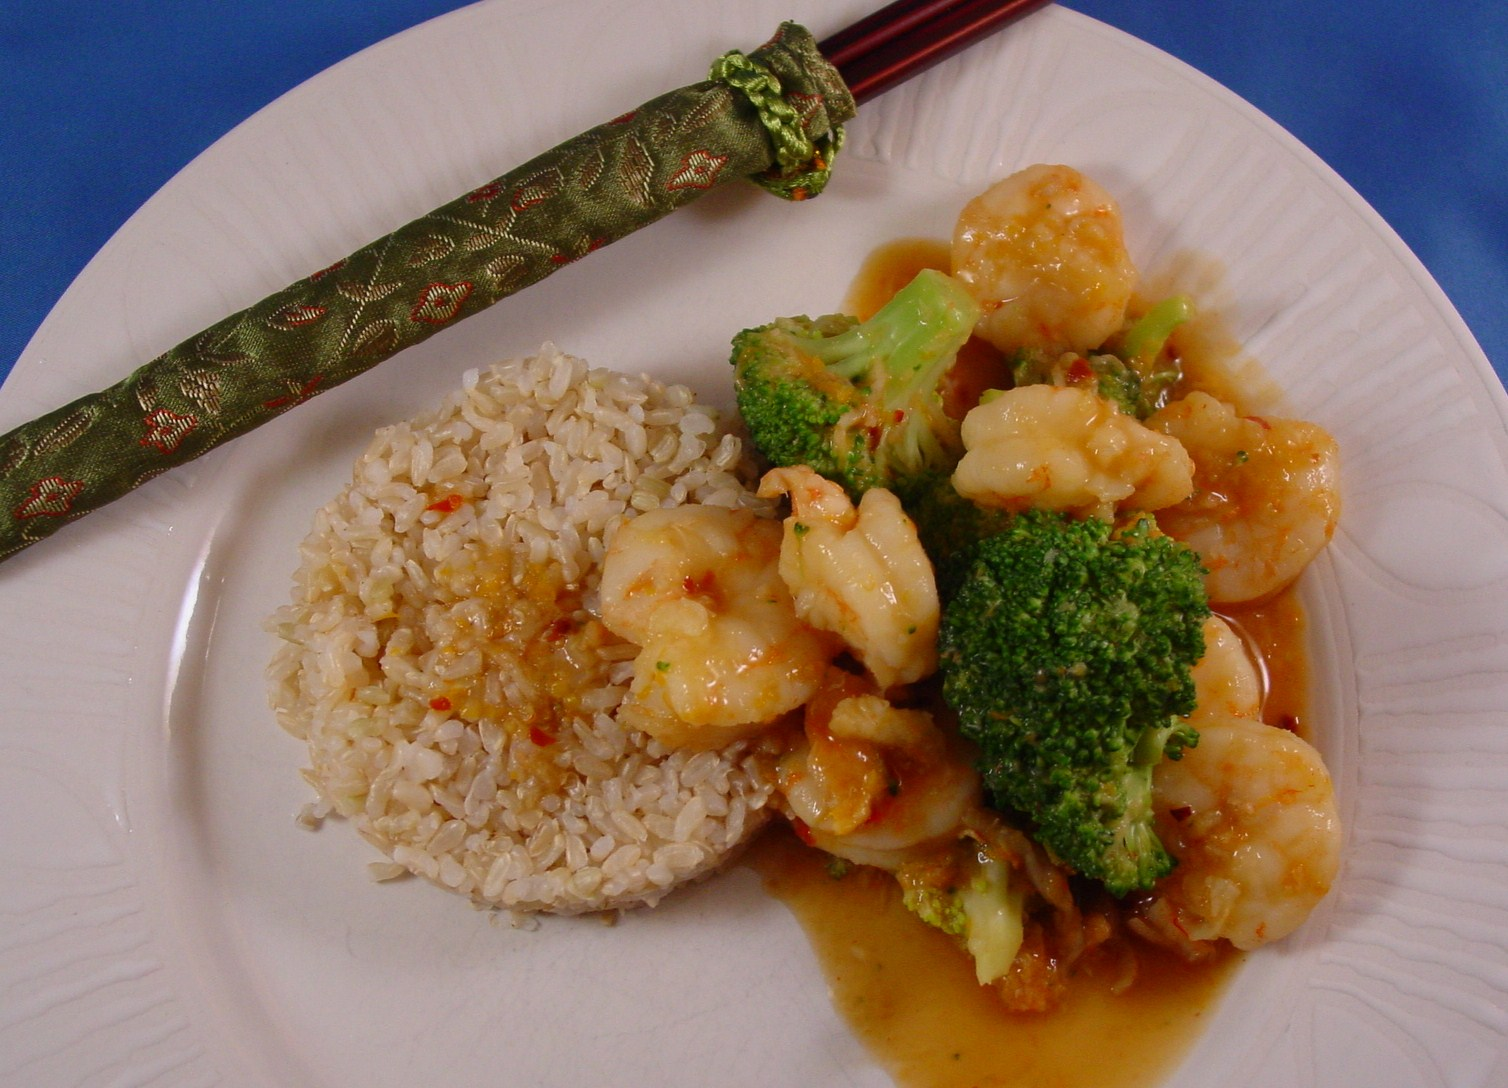 Judy and Barry, Cooking D'Lites: Spicy Orange Shrimp with Broccoli